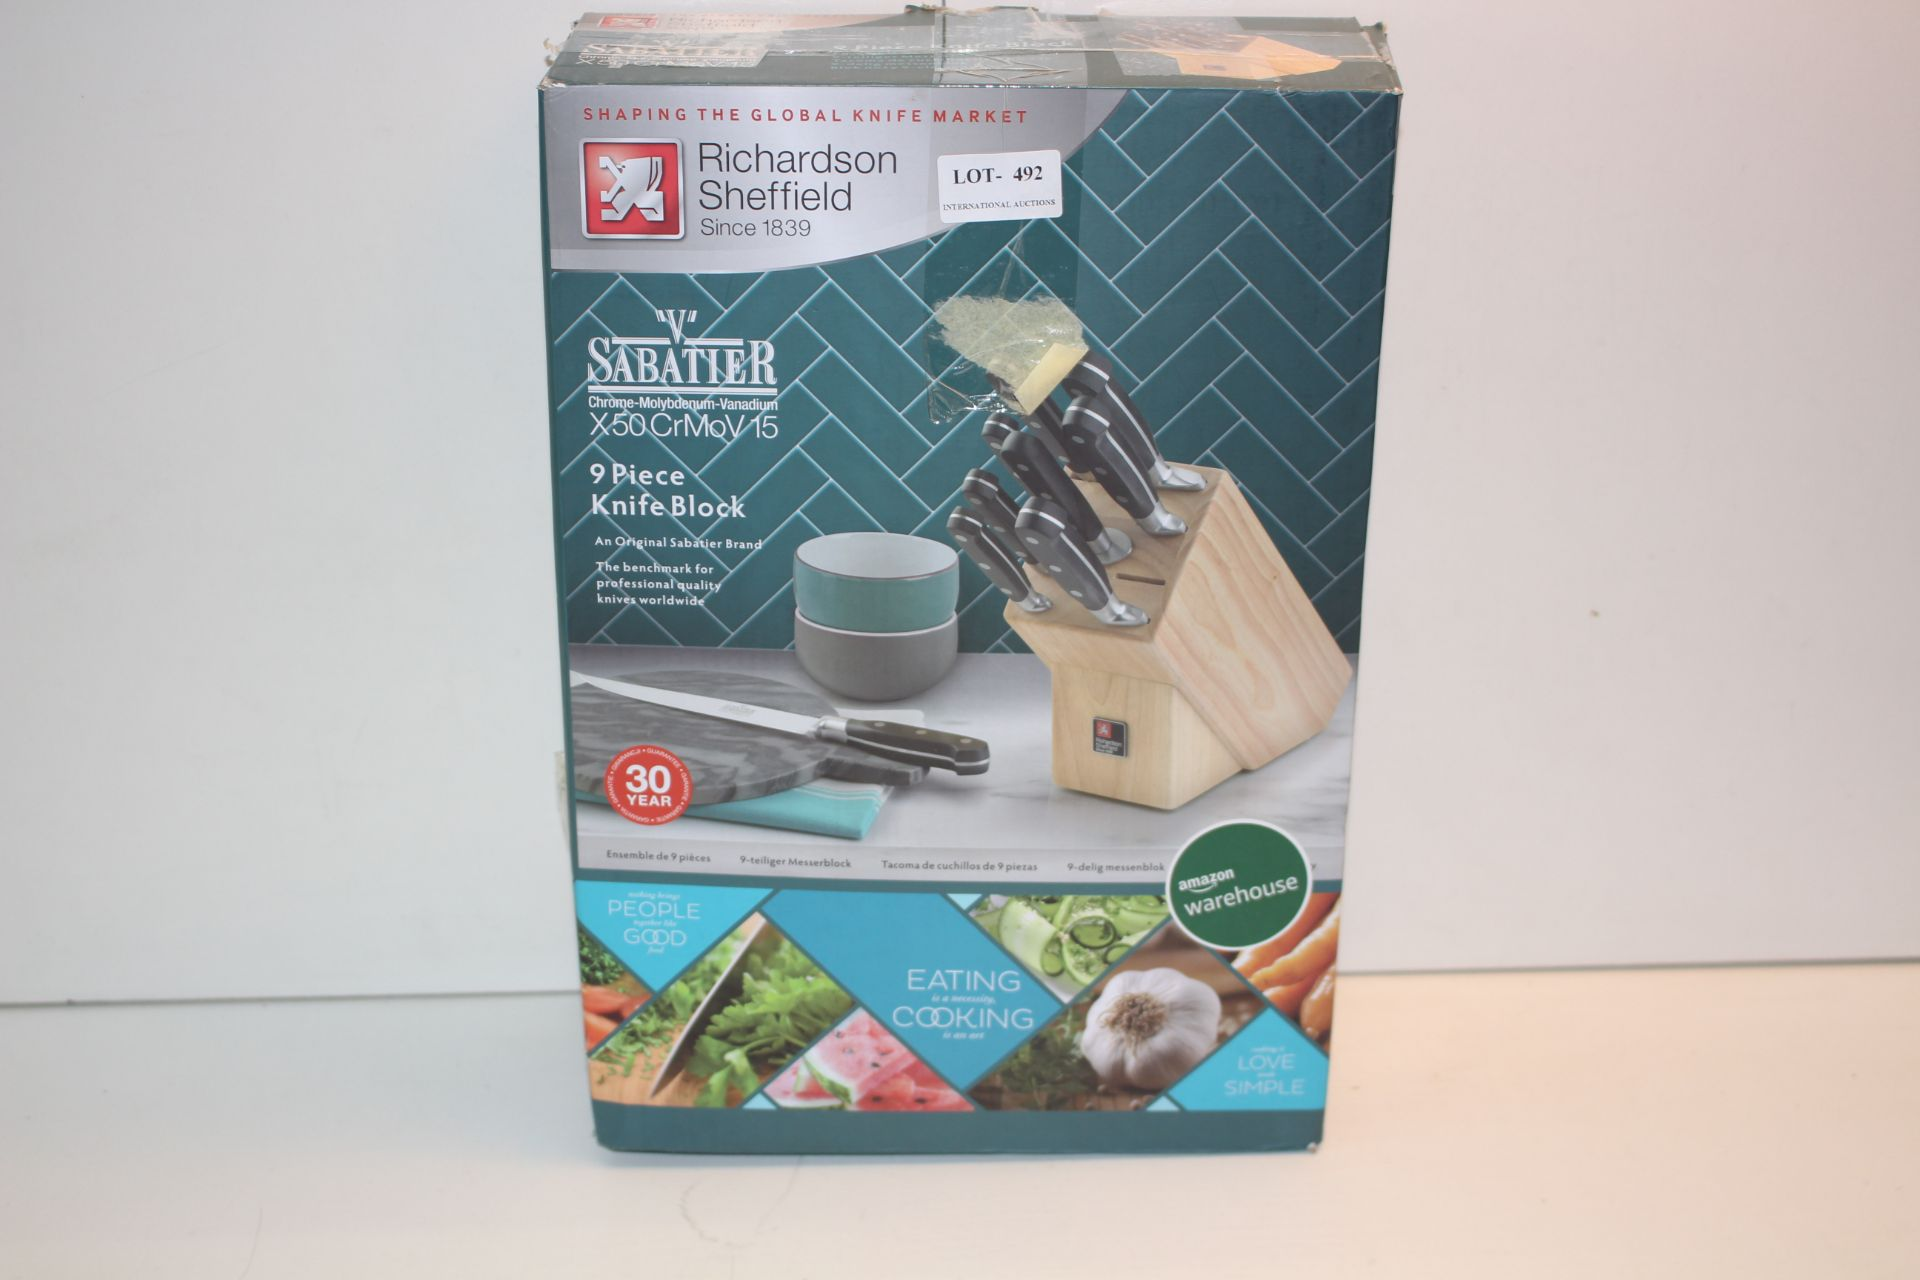 BOXED RICHARDSON SHEFFIELD 9 PIECE KNIFE BLOCK SET Condition ReportAppraisal Available on Request-